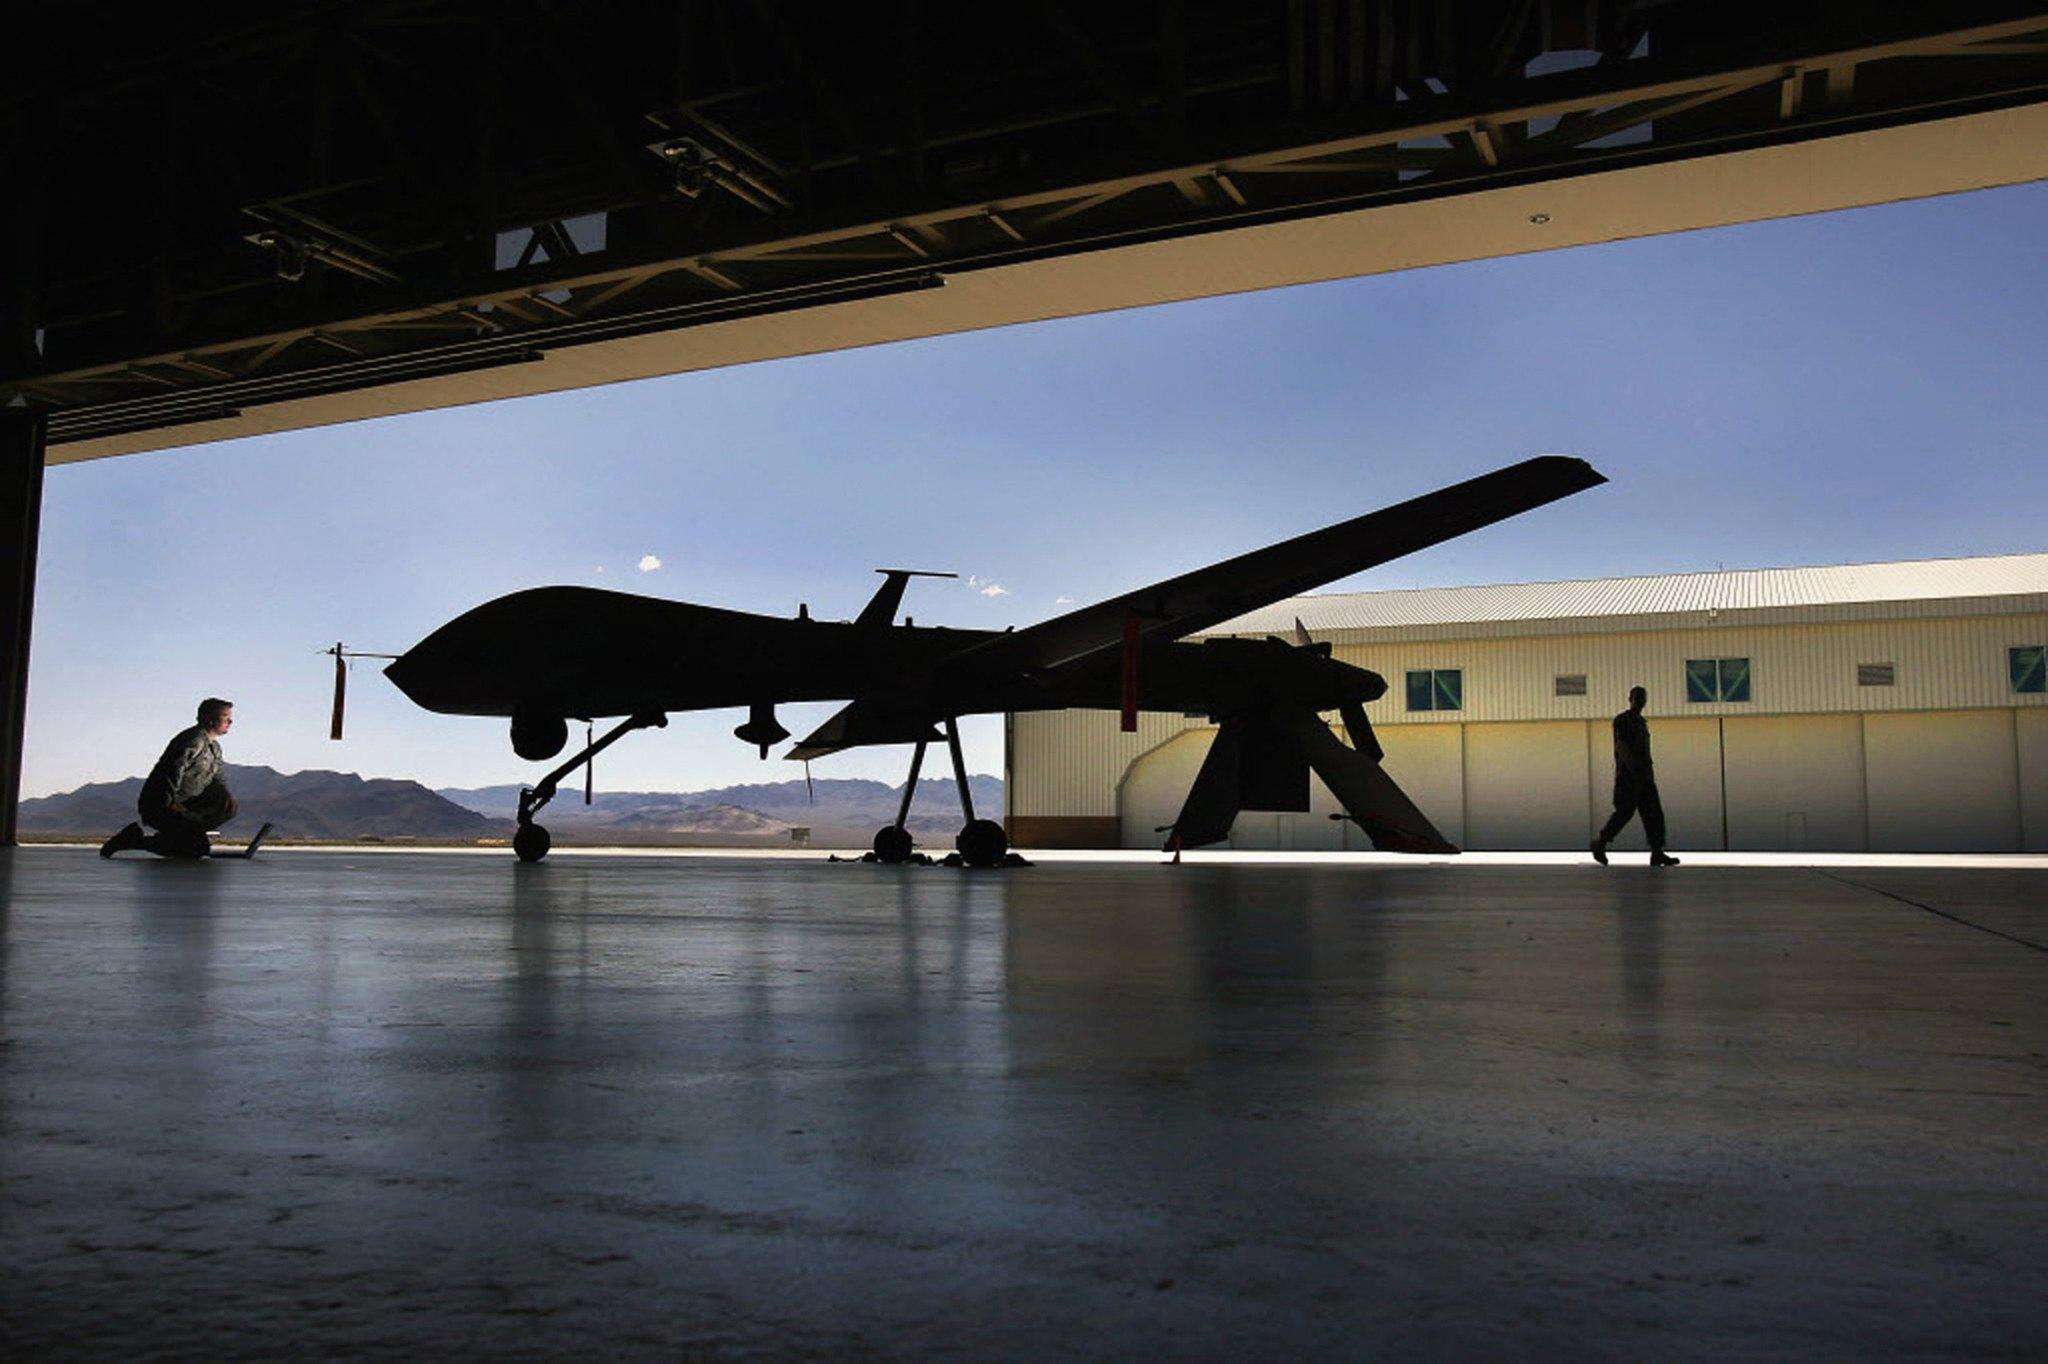 Staff Sgt. Brandon Redlich, left, uses a laptop to check on the status of a Predator unmanned aircraft system (UAS) at Creech Air Force Base in Indian Springs, Nevada. The Obama administration confirmed that U.S. armed drones are now flying over Iraq.